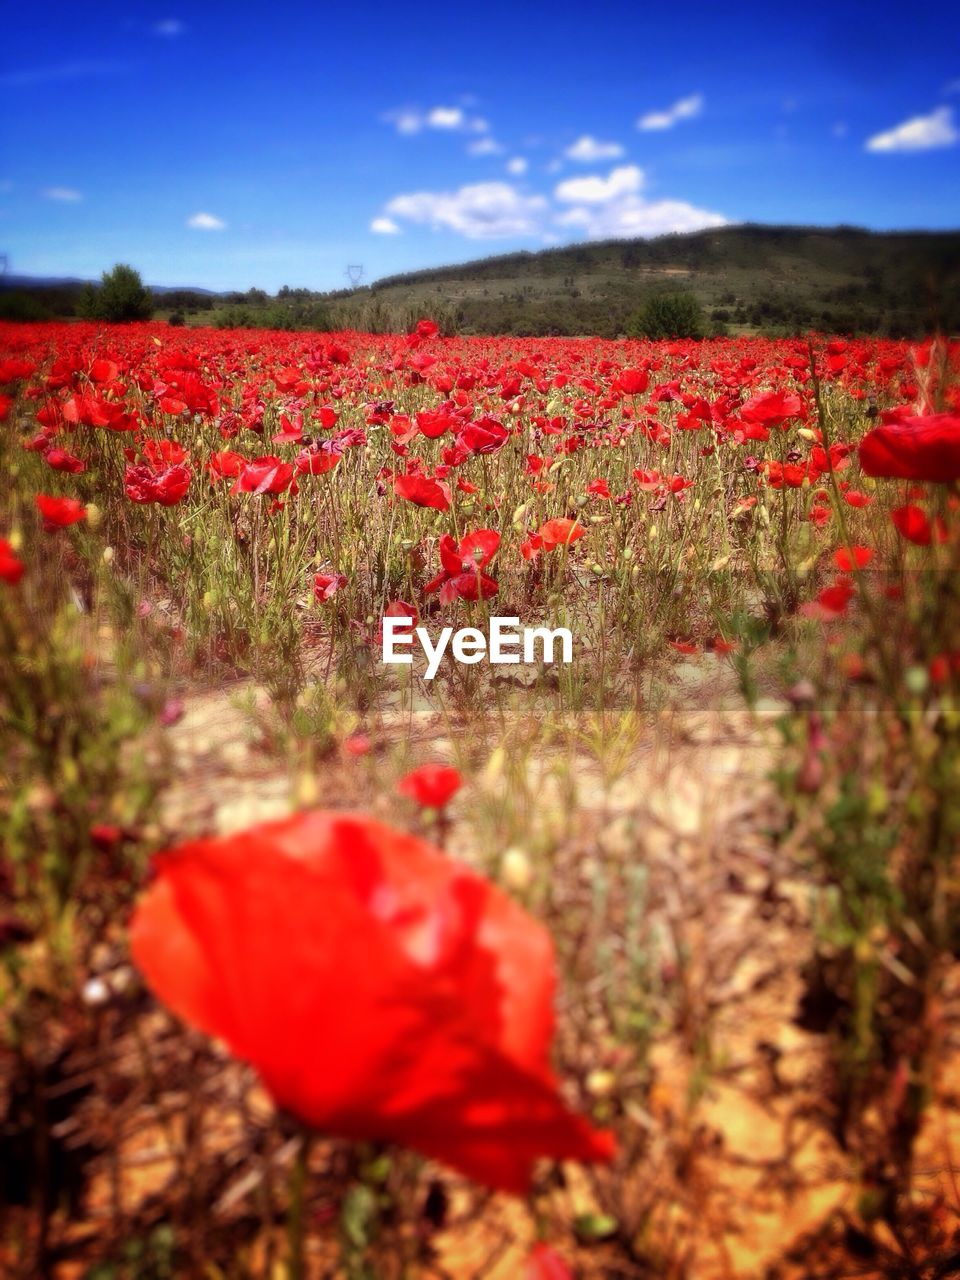 red, poppy, nature, field, growth, beauty in nature, flower, tranquility, plant, rural scene, sky, no people, landscape, agriculture, outdoors, tranquil scene, scenics, day, freshness, fragility, flower head